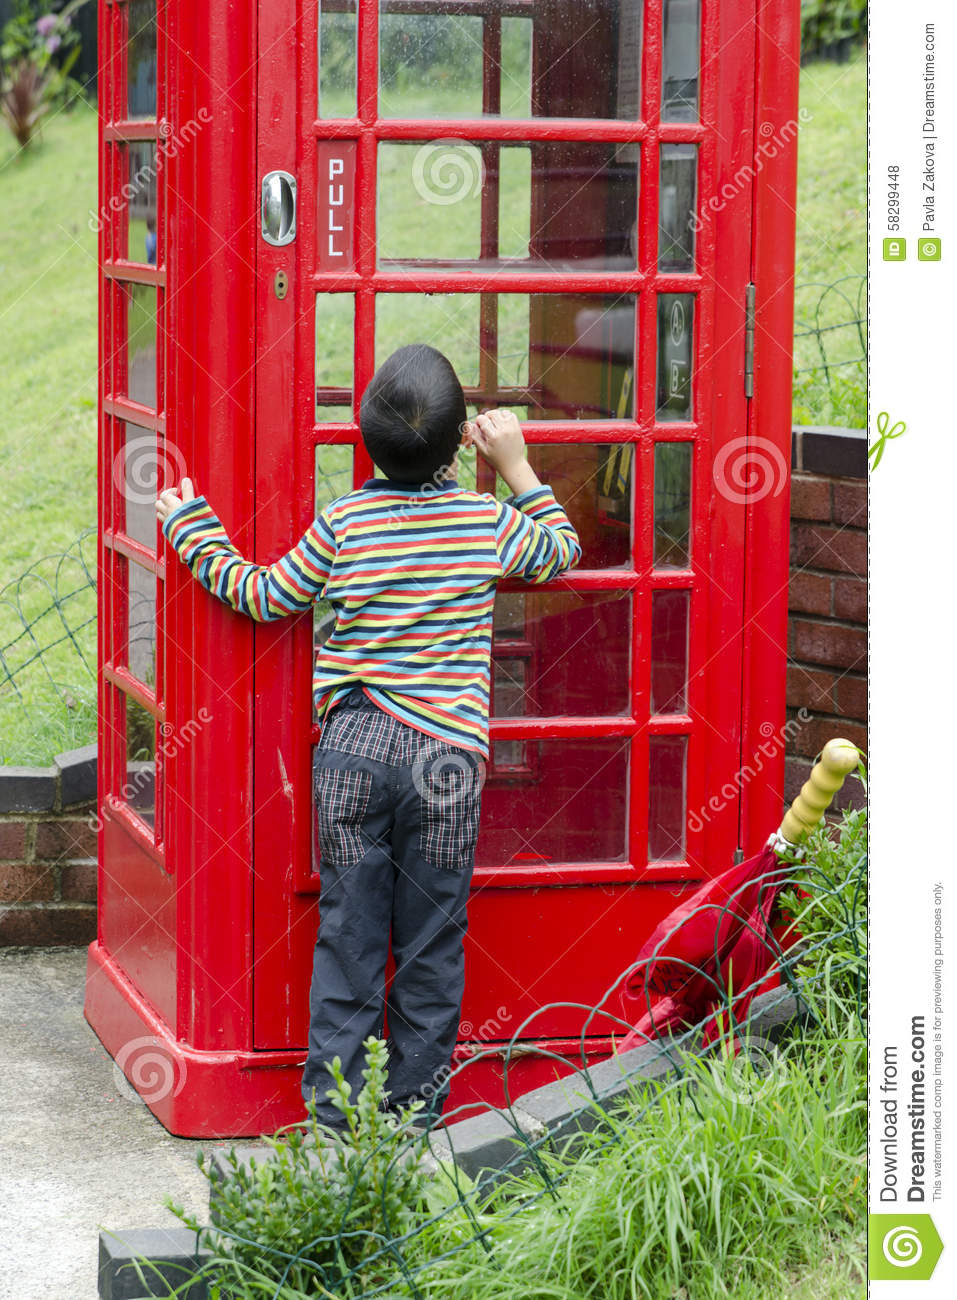 Child by a Brithish phone box